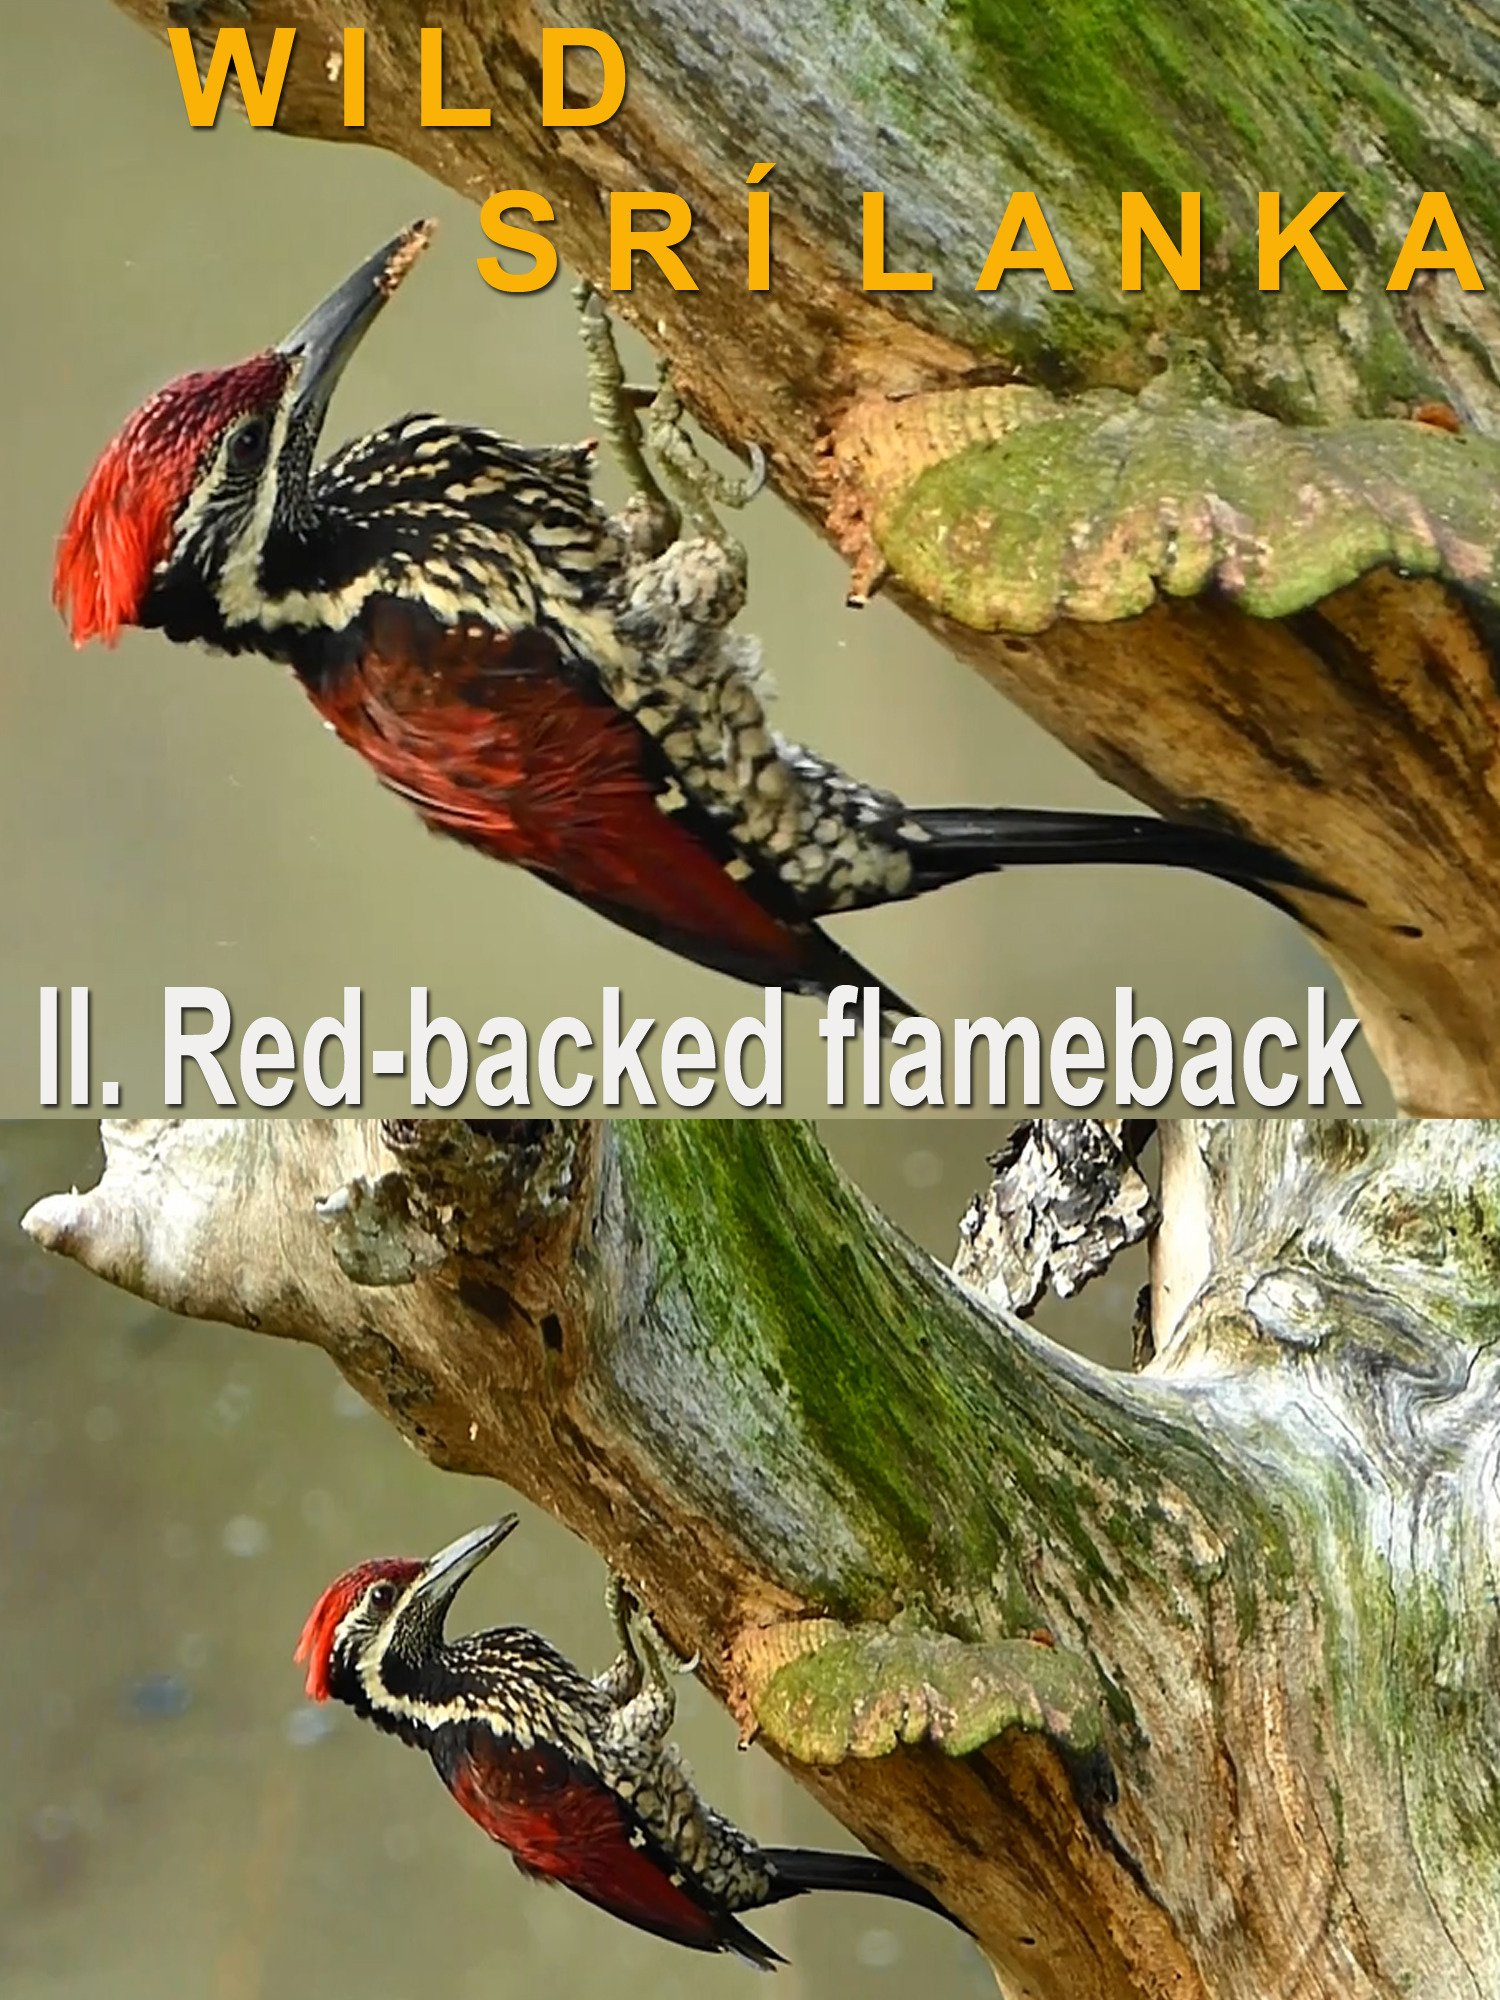 Wild Sri Lanka. II. Red-backed flameback on Amazon Prime Instant Video UK